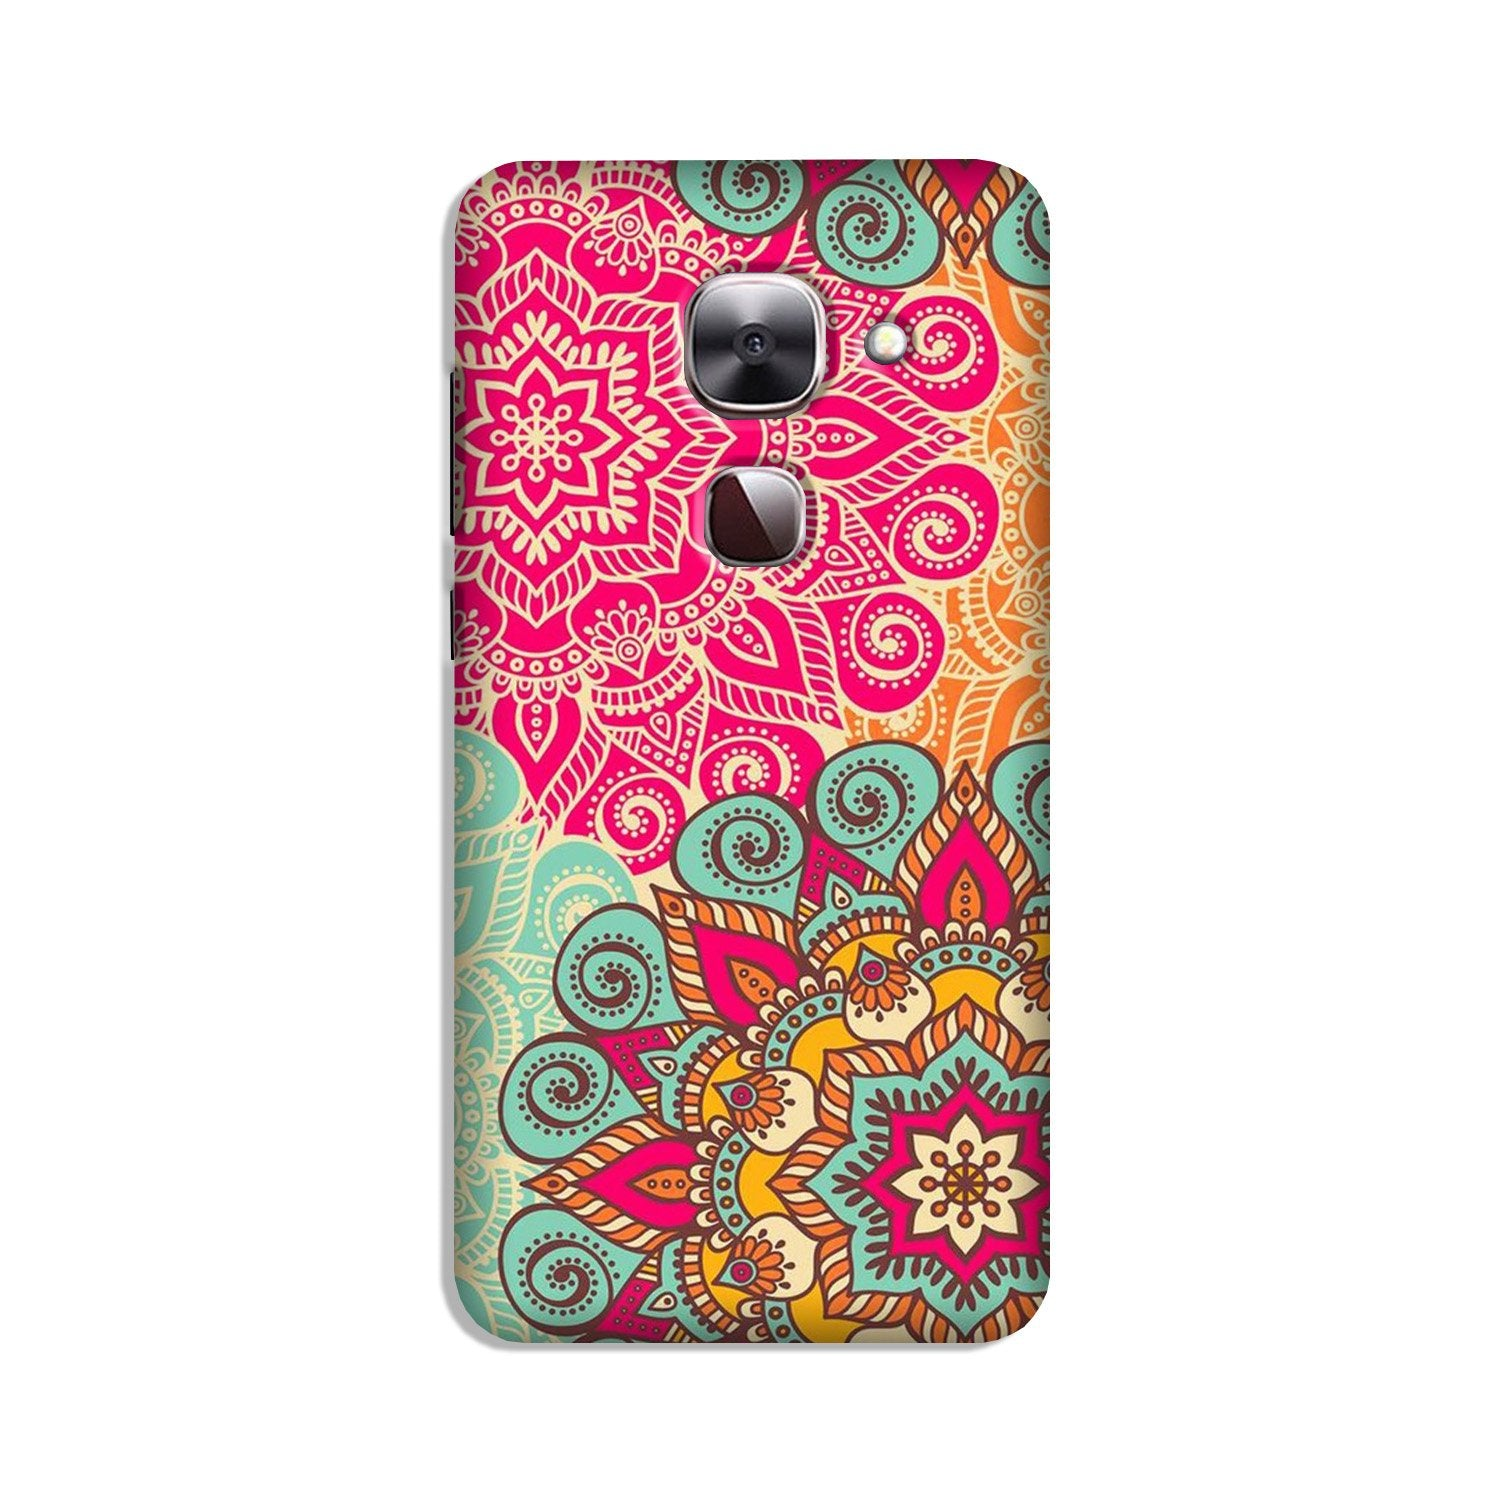 Rangoli art Case for LeEco le 2s